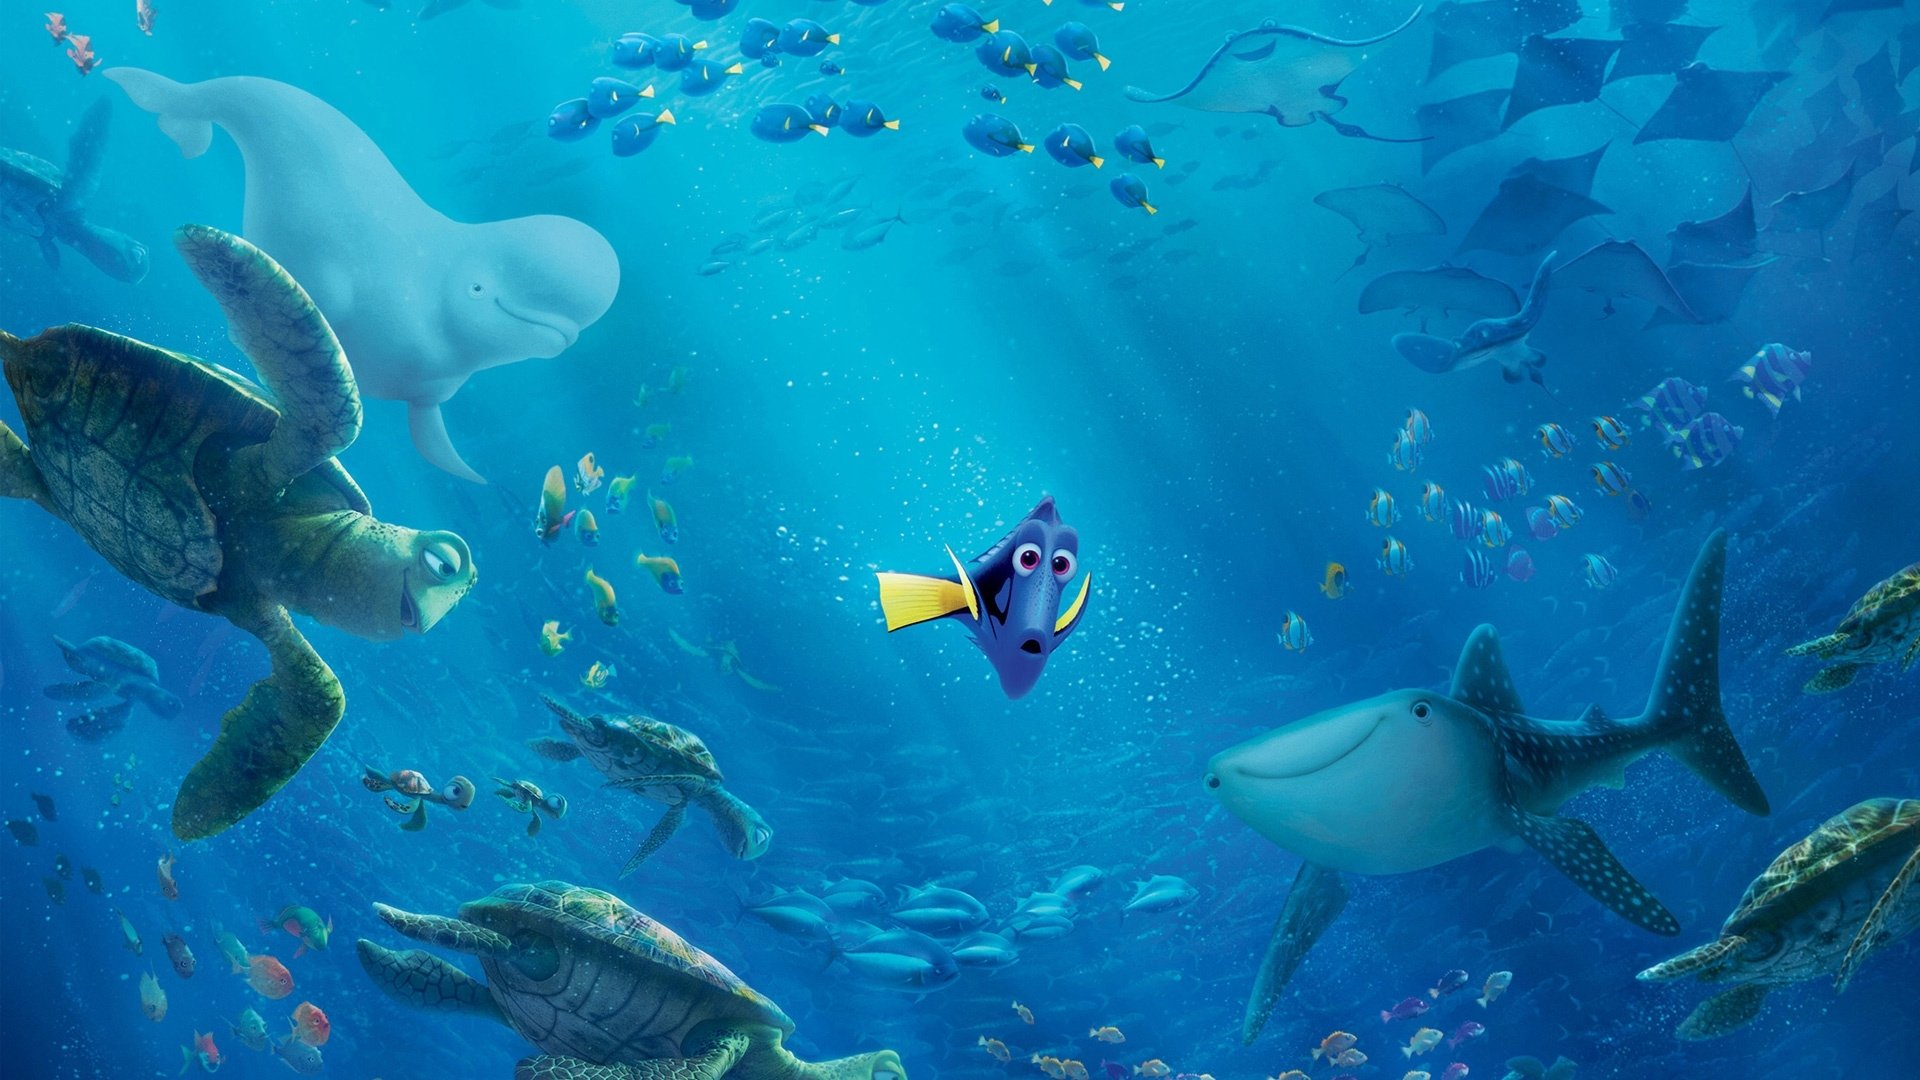 29 finding dory hd wallpapers | background images - wallpaper abyss